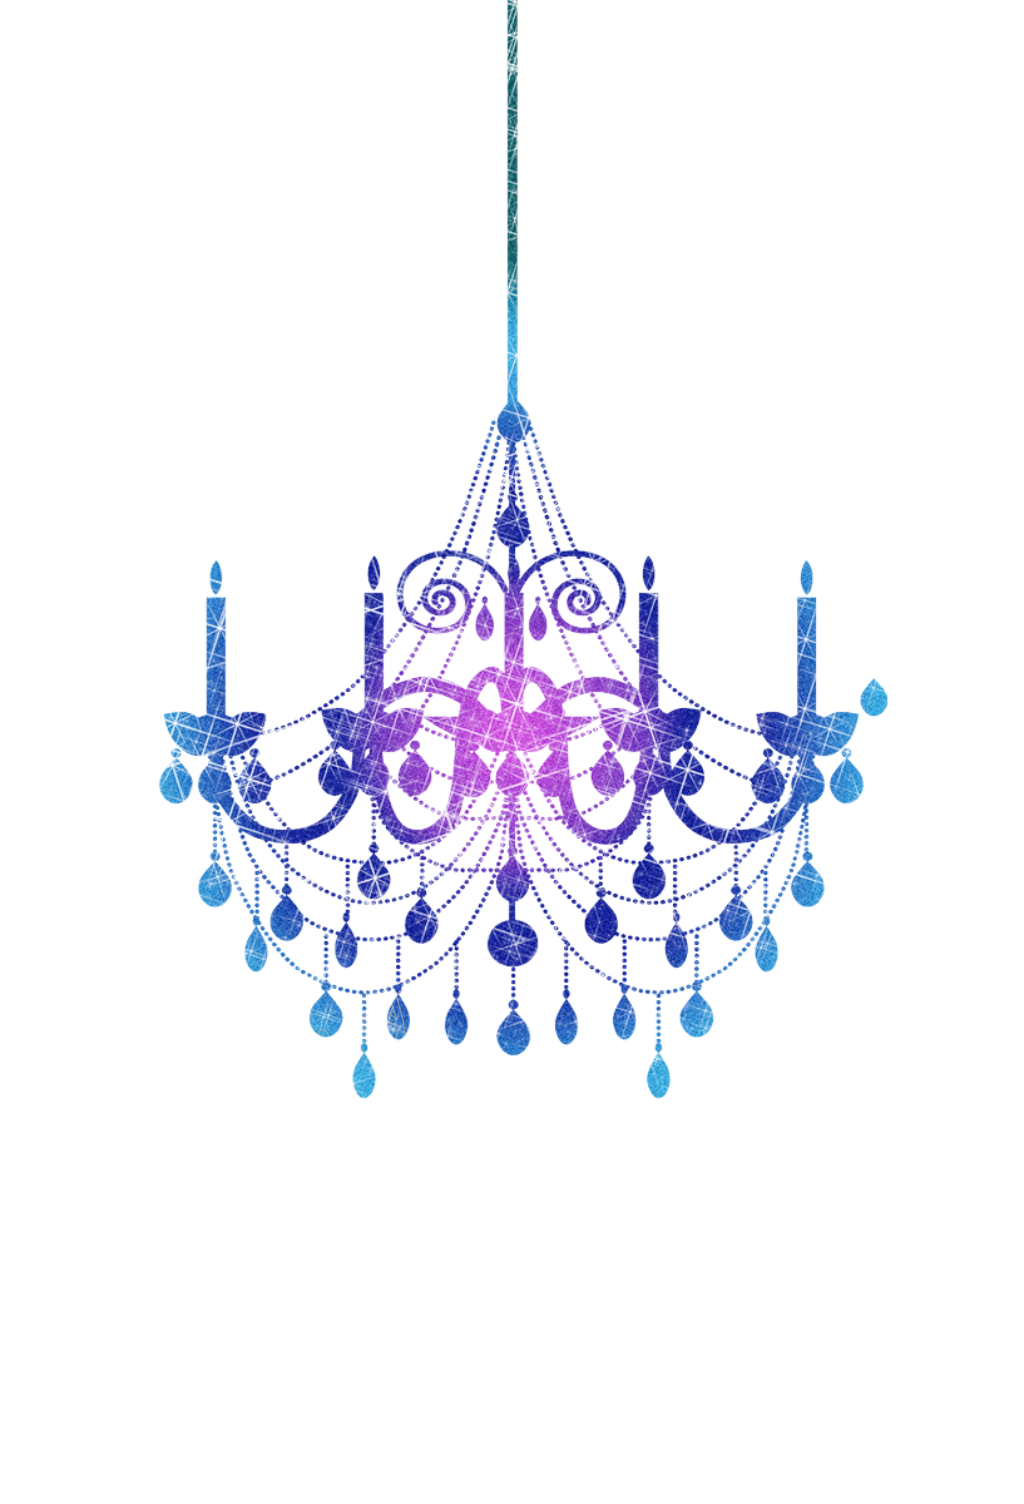 Chandelier vector png free. Hand painted purple transparent